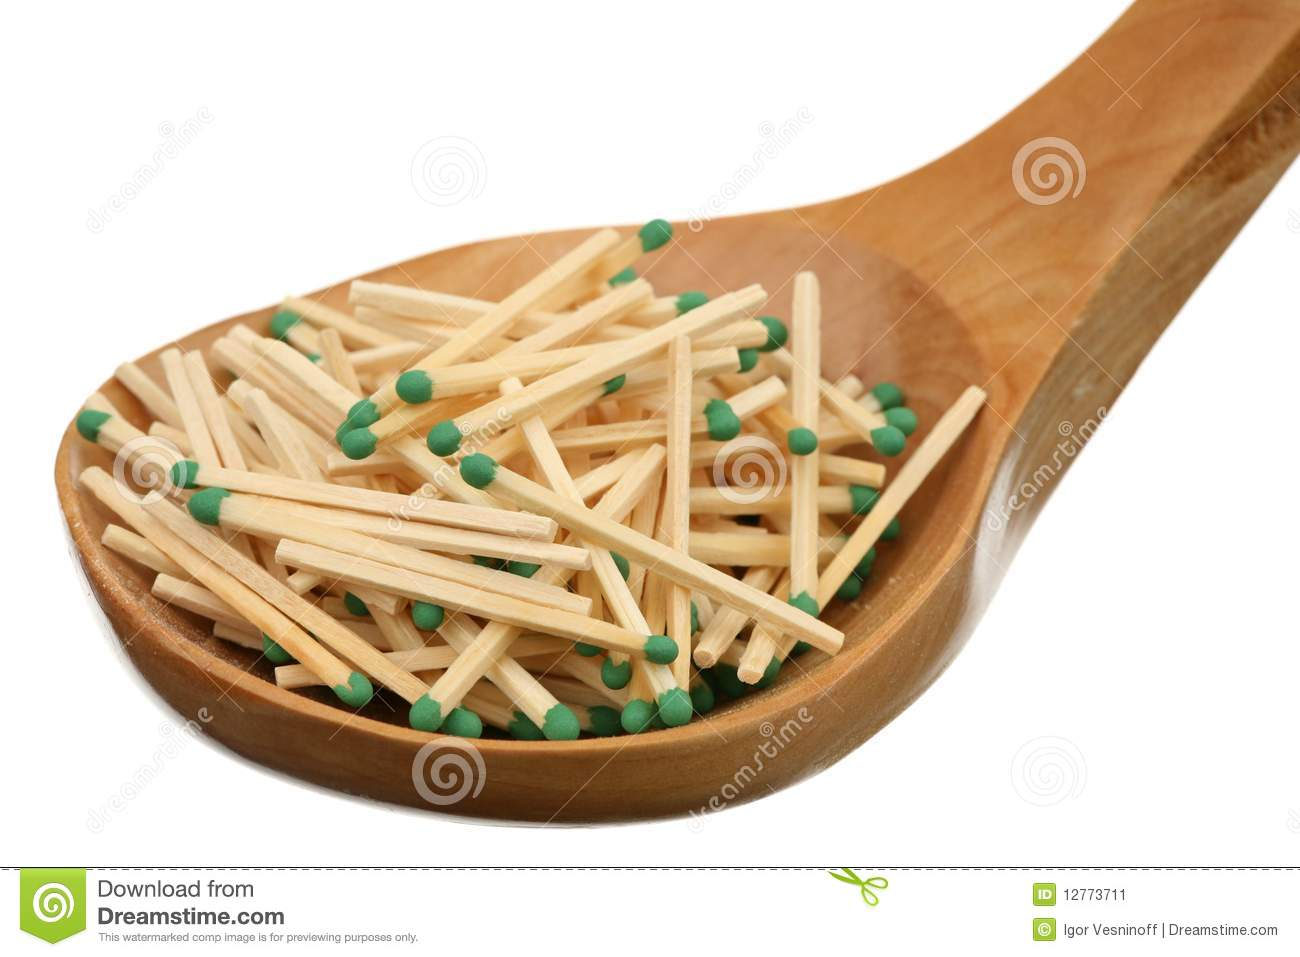 More similar stock images of matches in a wooden spoon